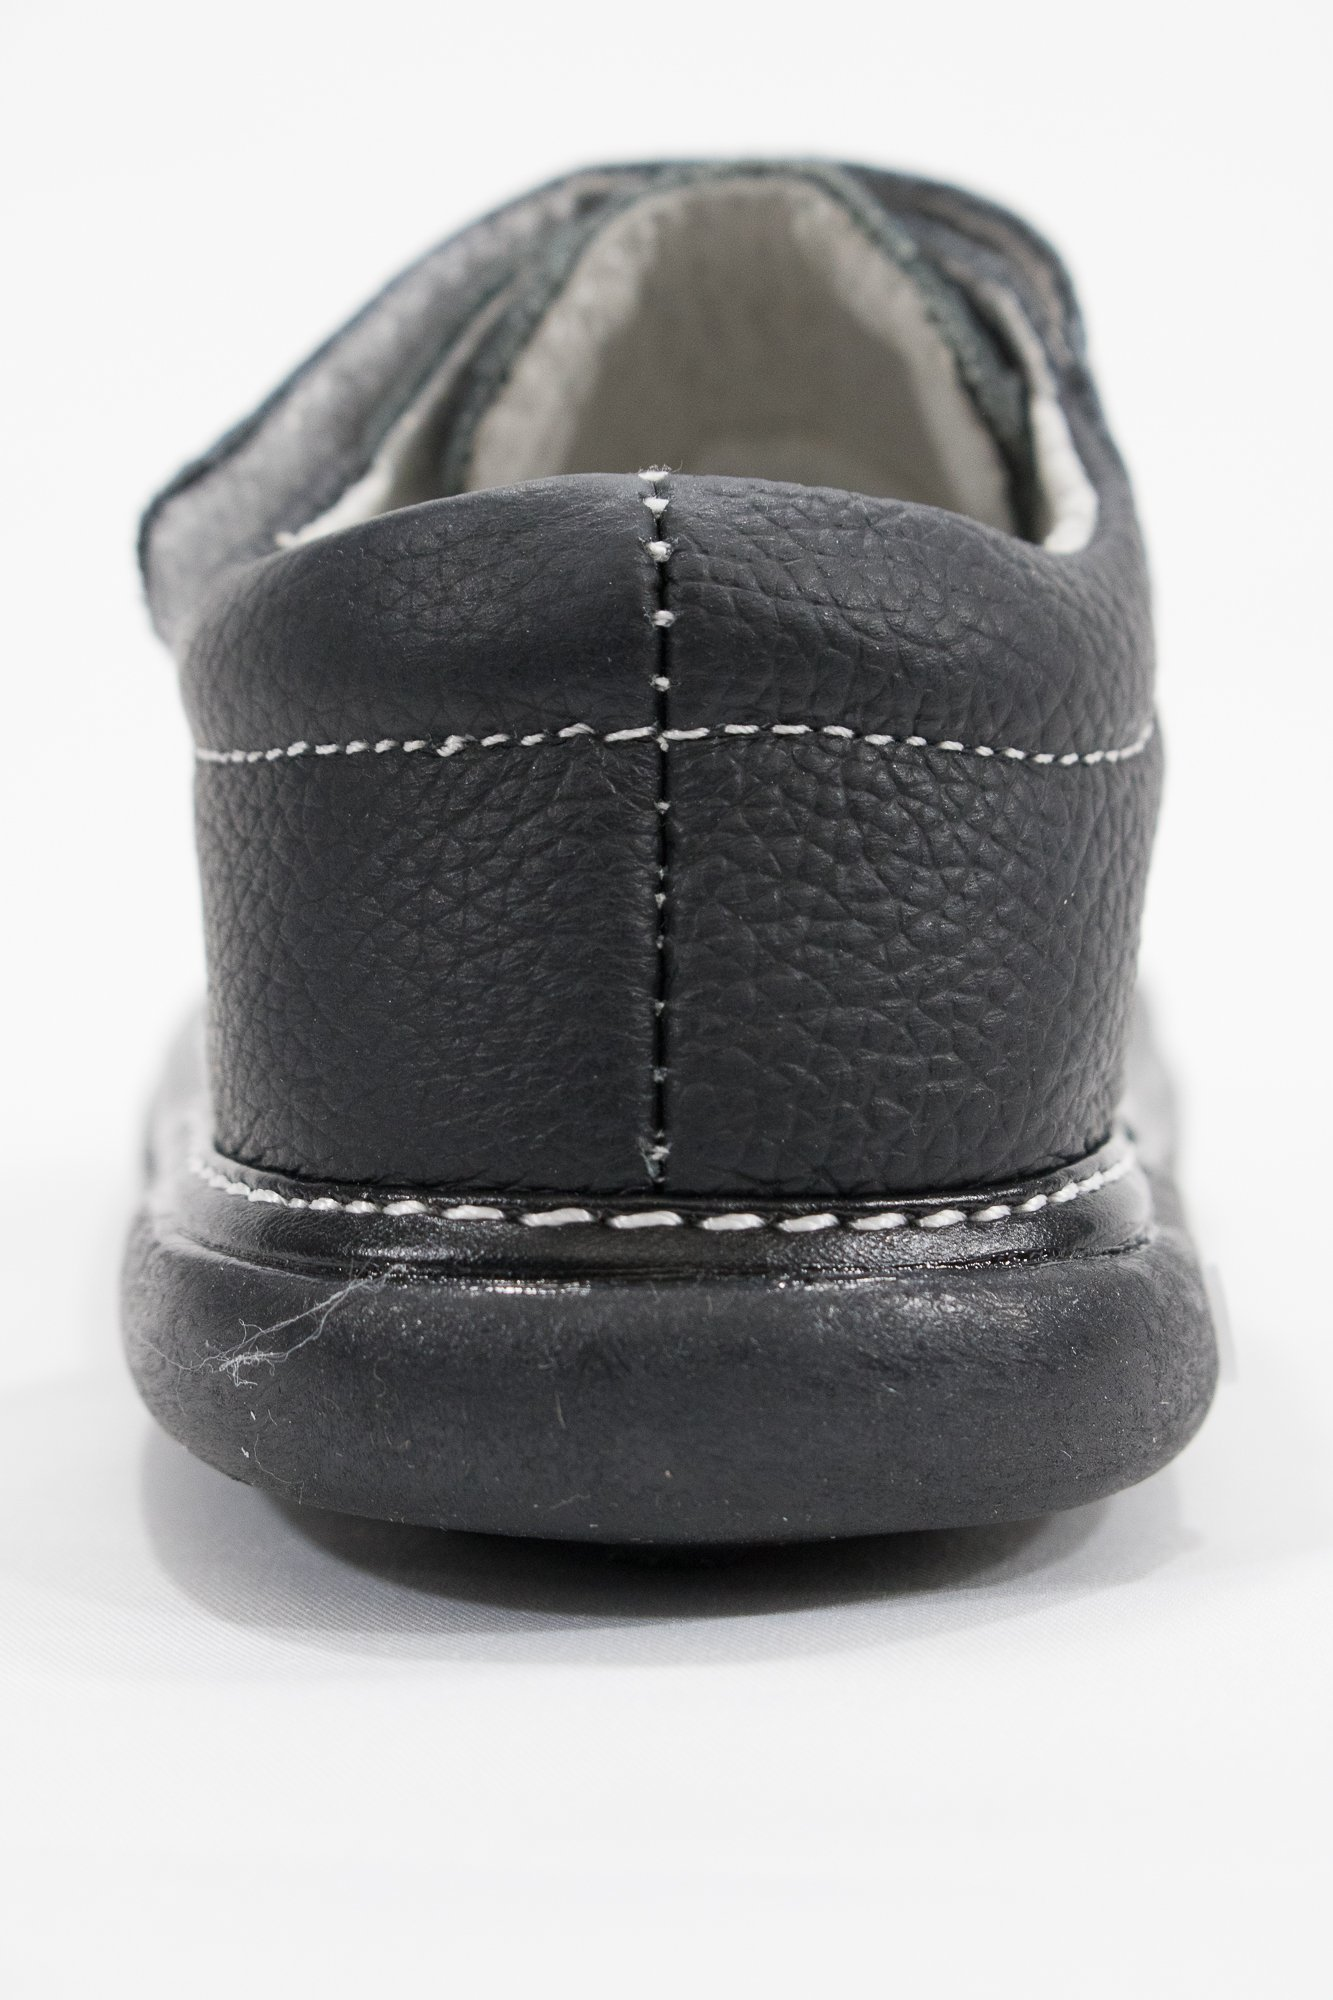 Anderson Baby Care LLC Squeaky Shoes for Toddler Boys (4T, Black Loafer) by Anderson Baby Care LLC (Image #4)